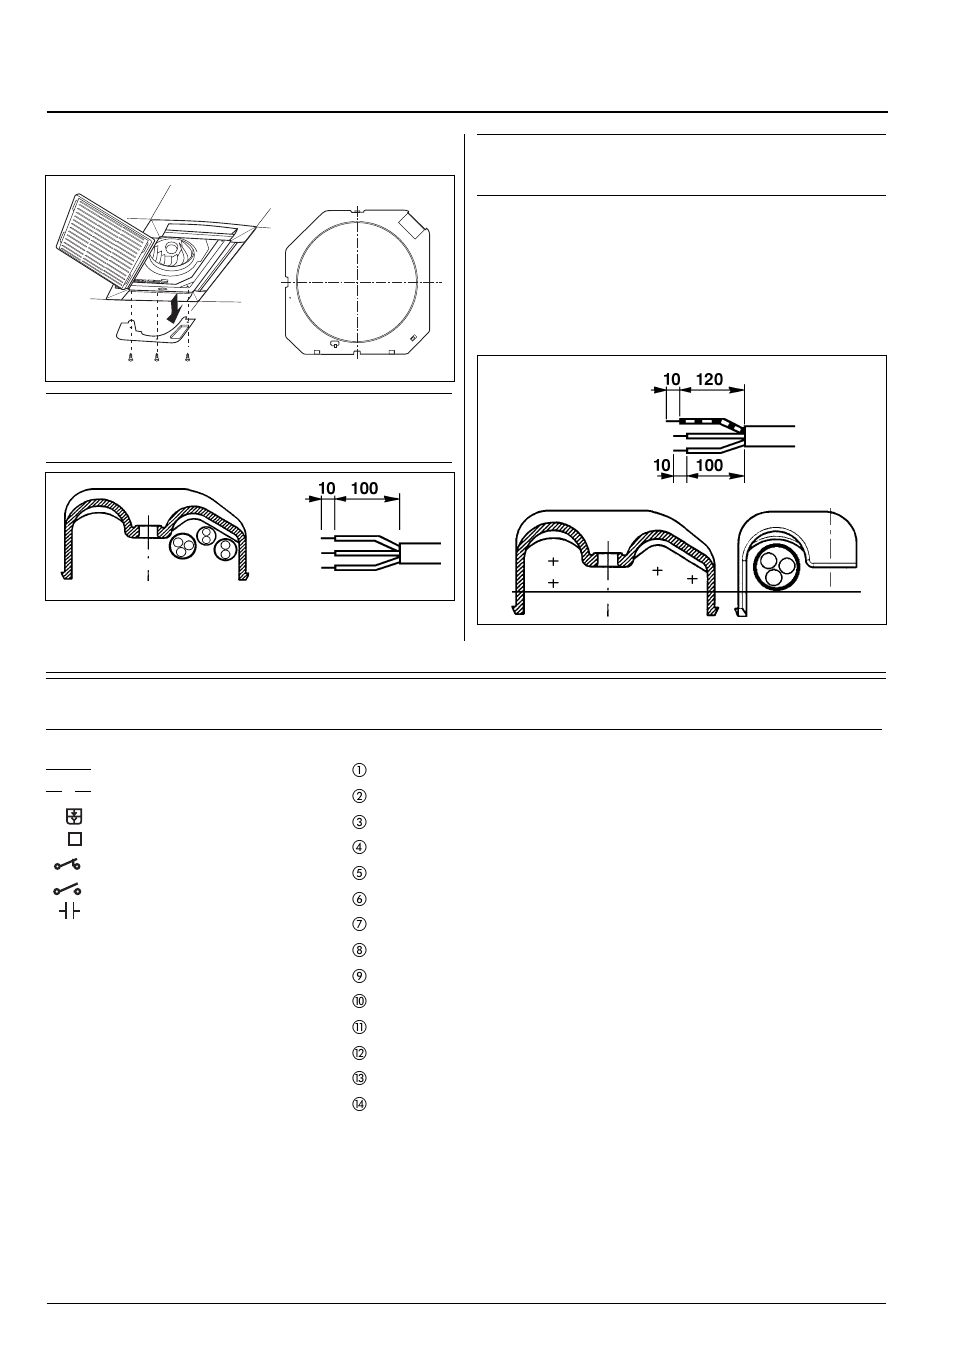 carrier 42gw page13 42 gw, wiring diagram legend electrical connections, connections carrier wiring diagram at crackthecode.co